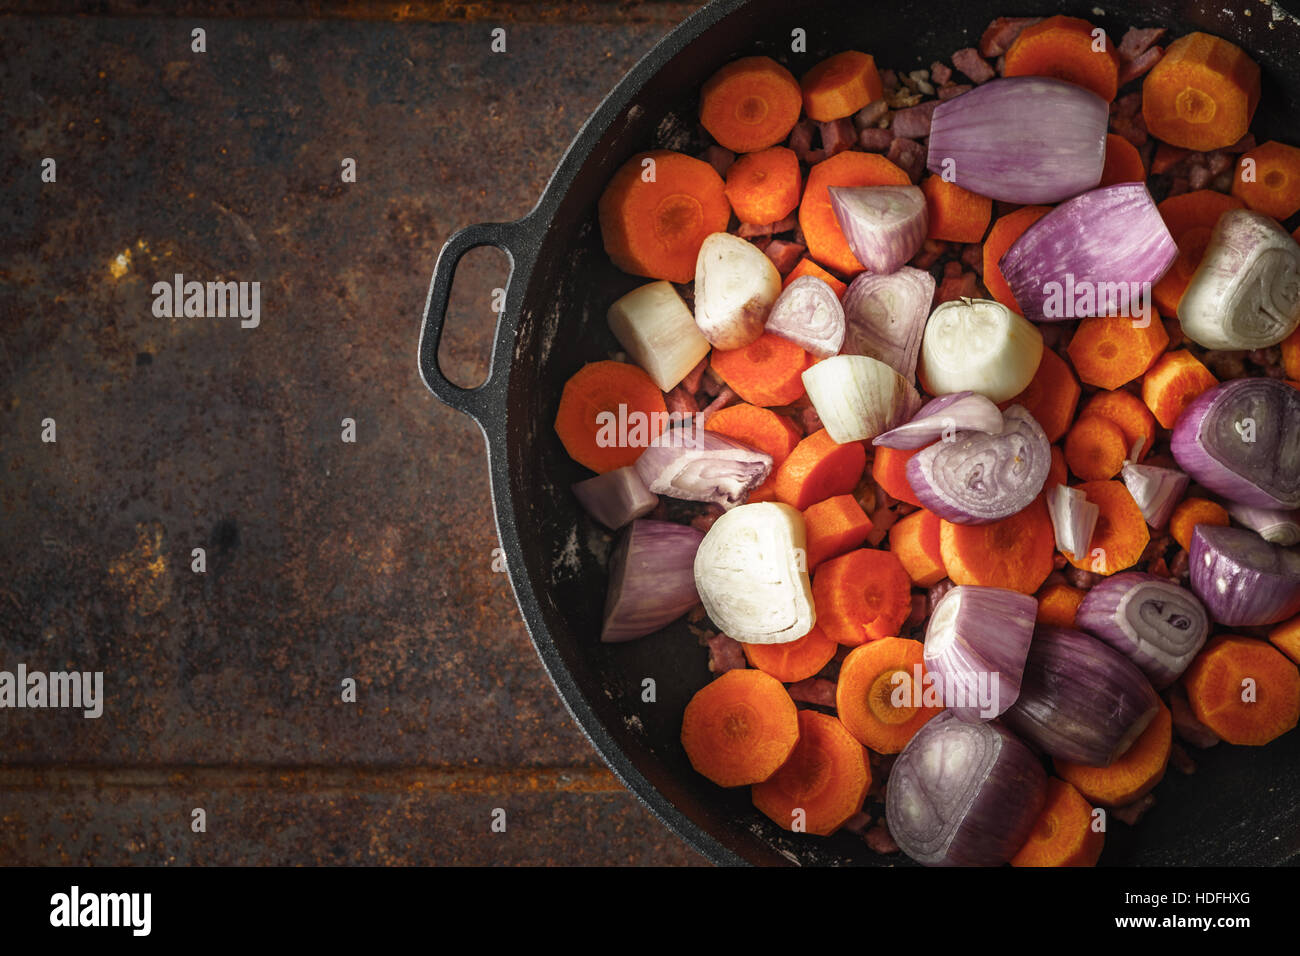 Shallot and carrots in the pan on the metal background - Stock Image